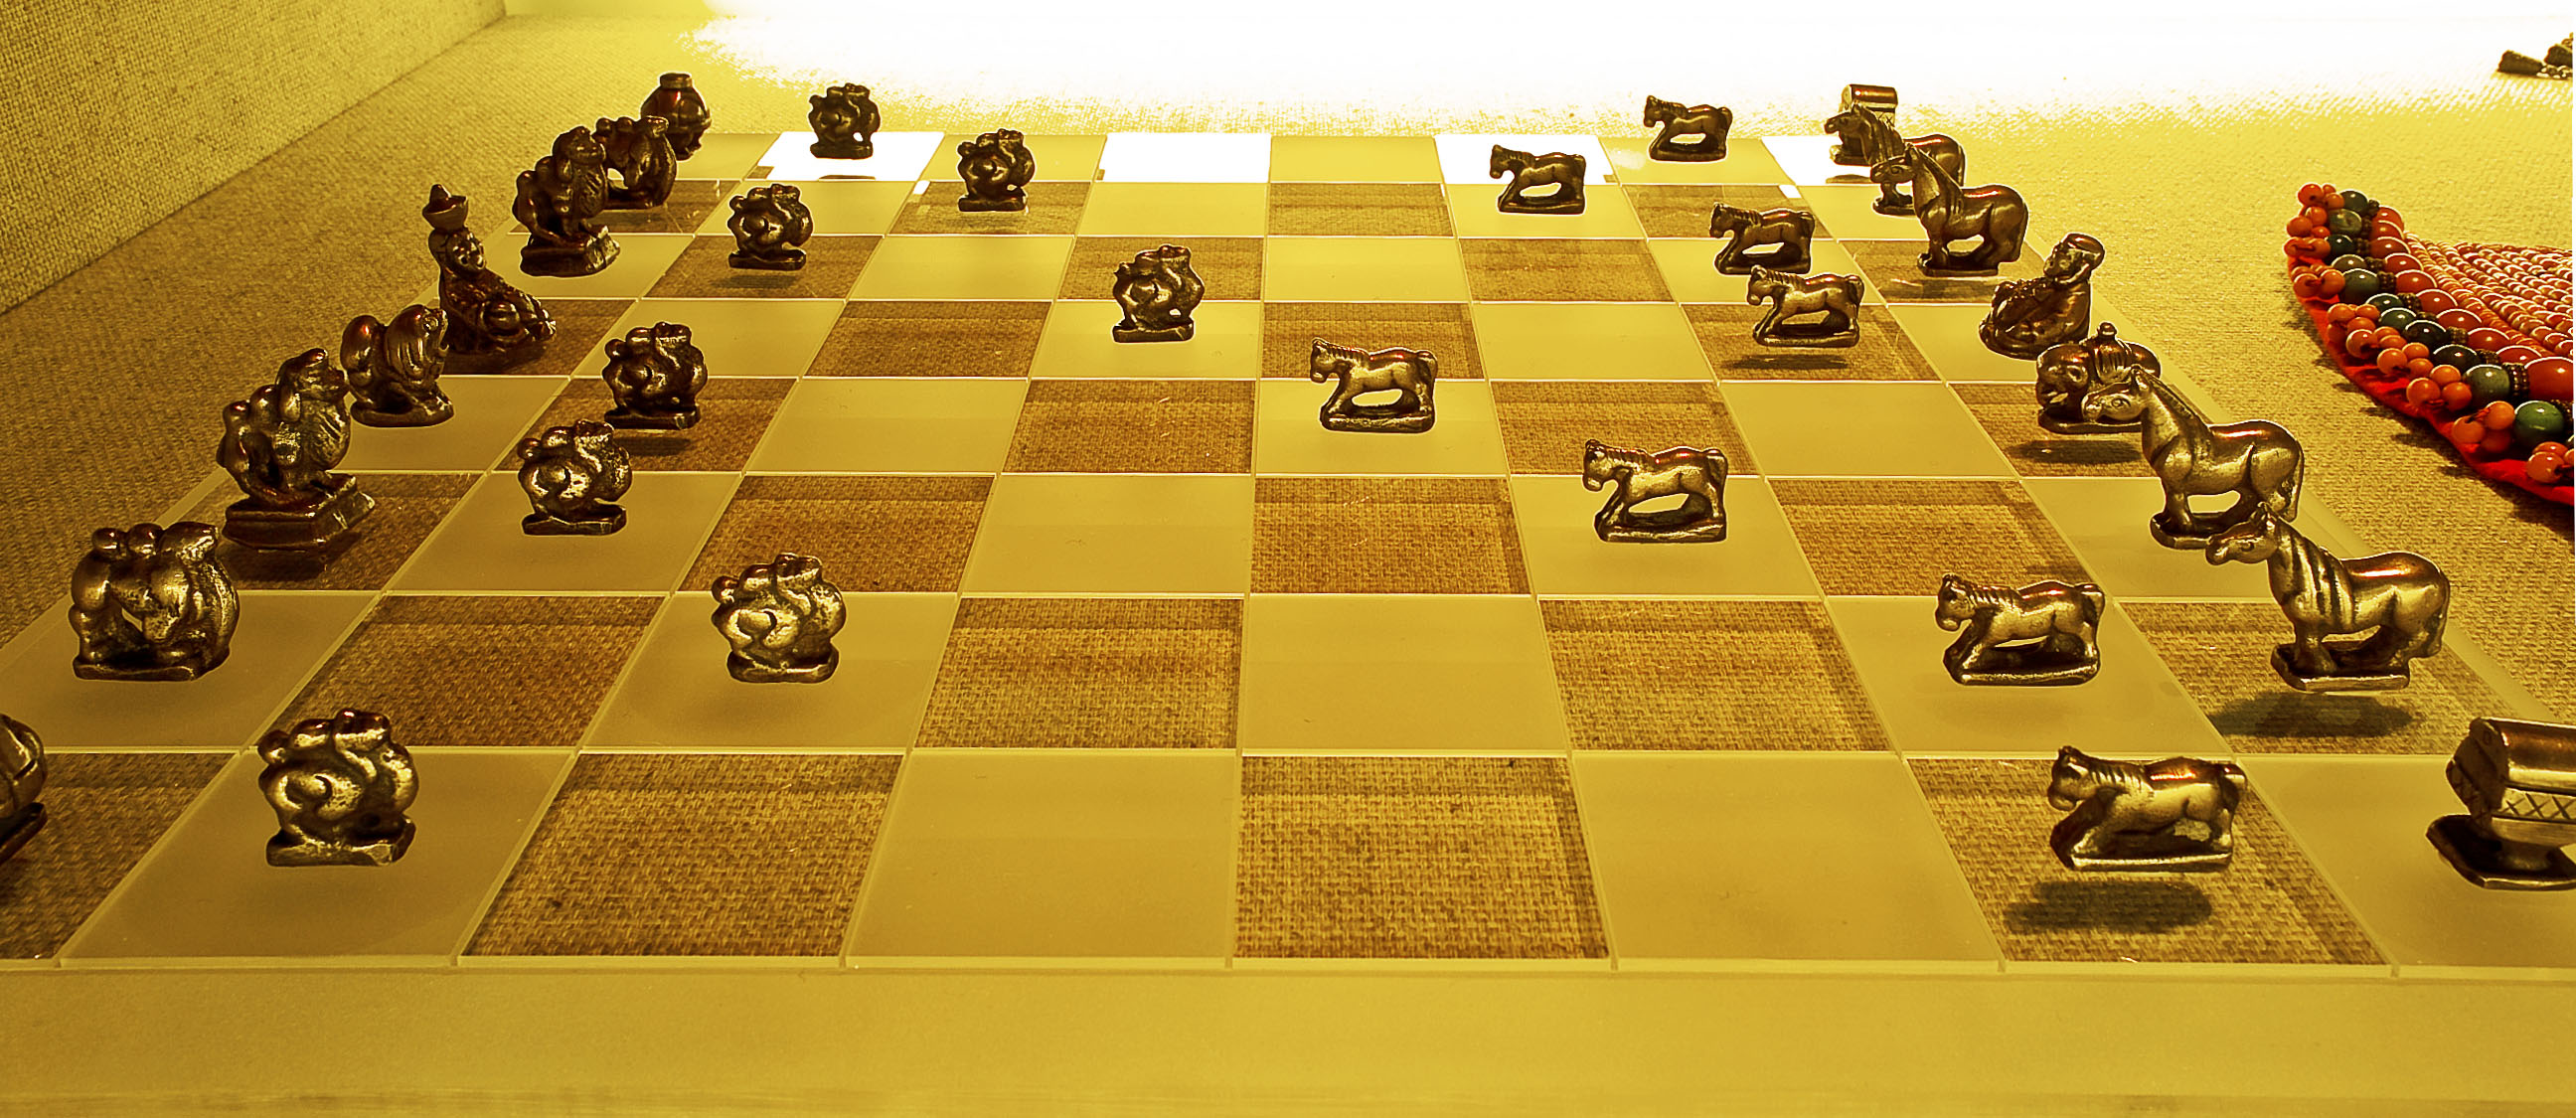 Shanghai museum Mongol chess set